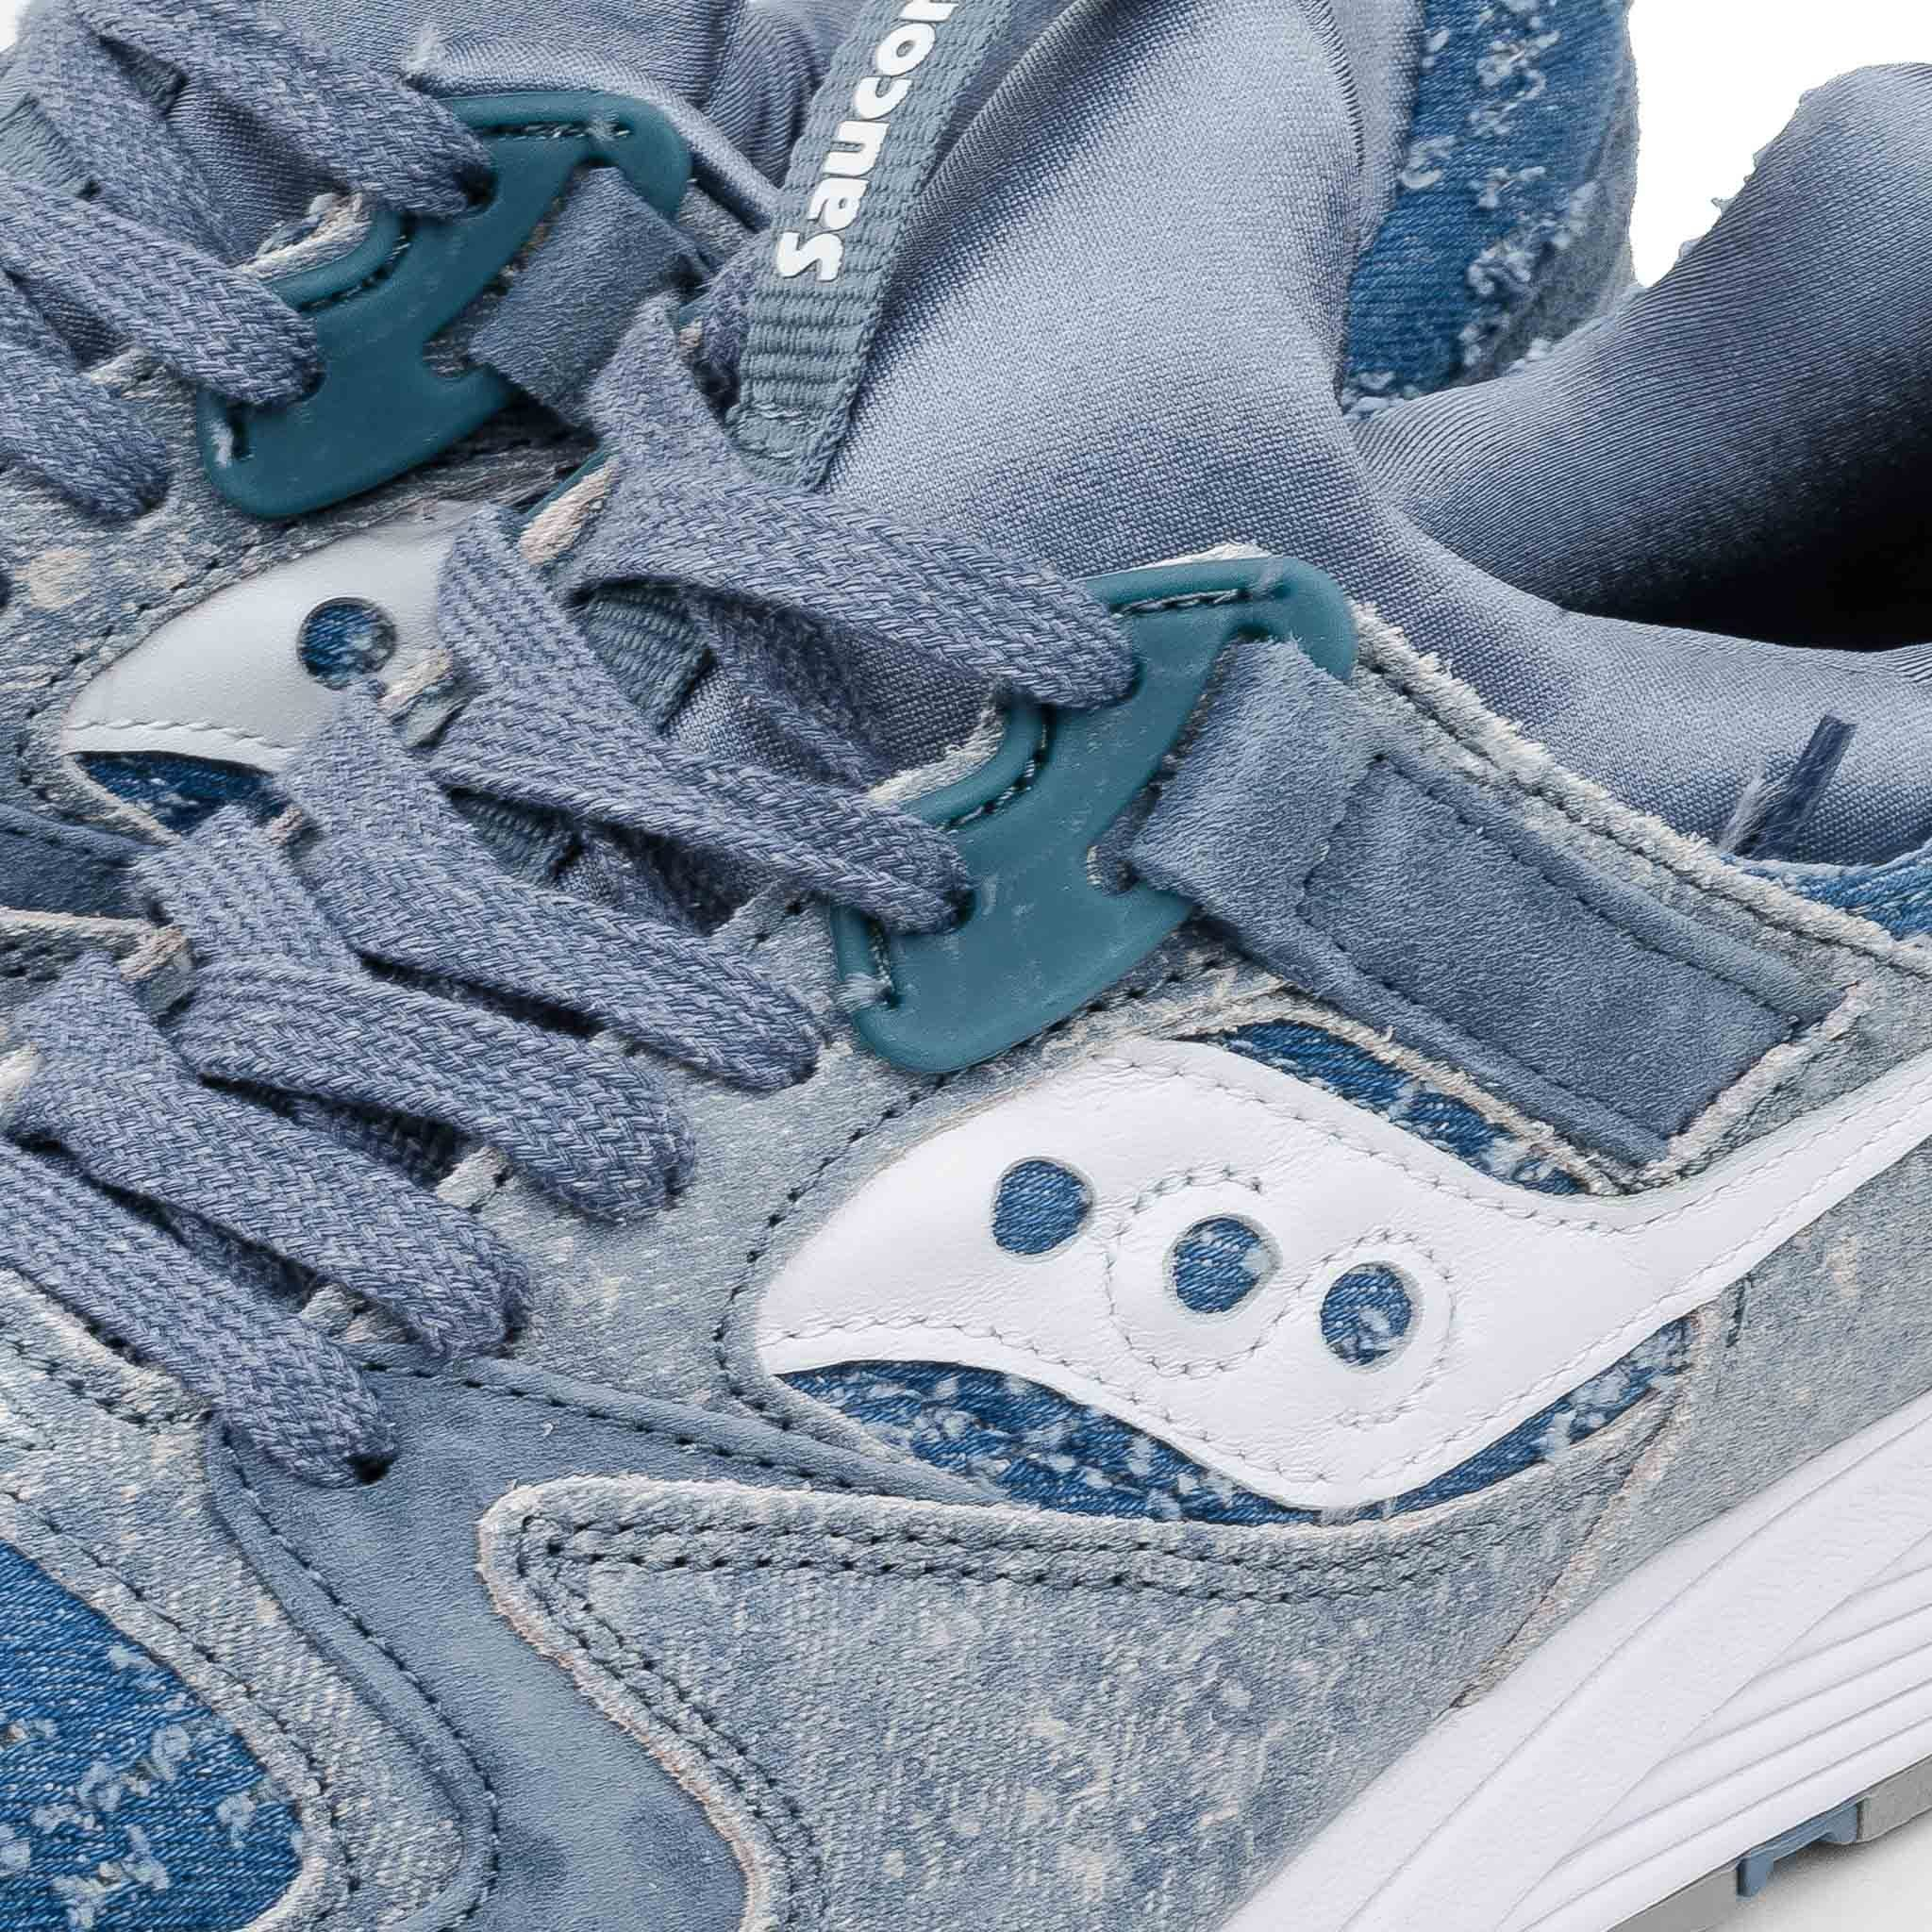 Grid 8500 Blue Denim S70343-1